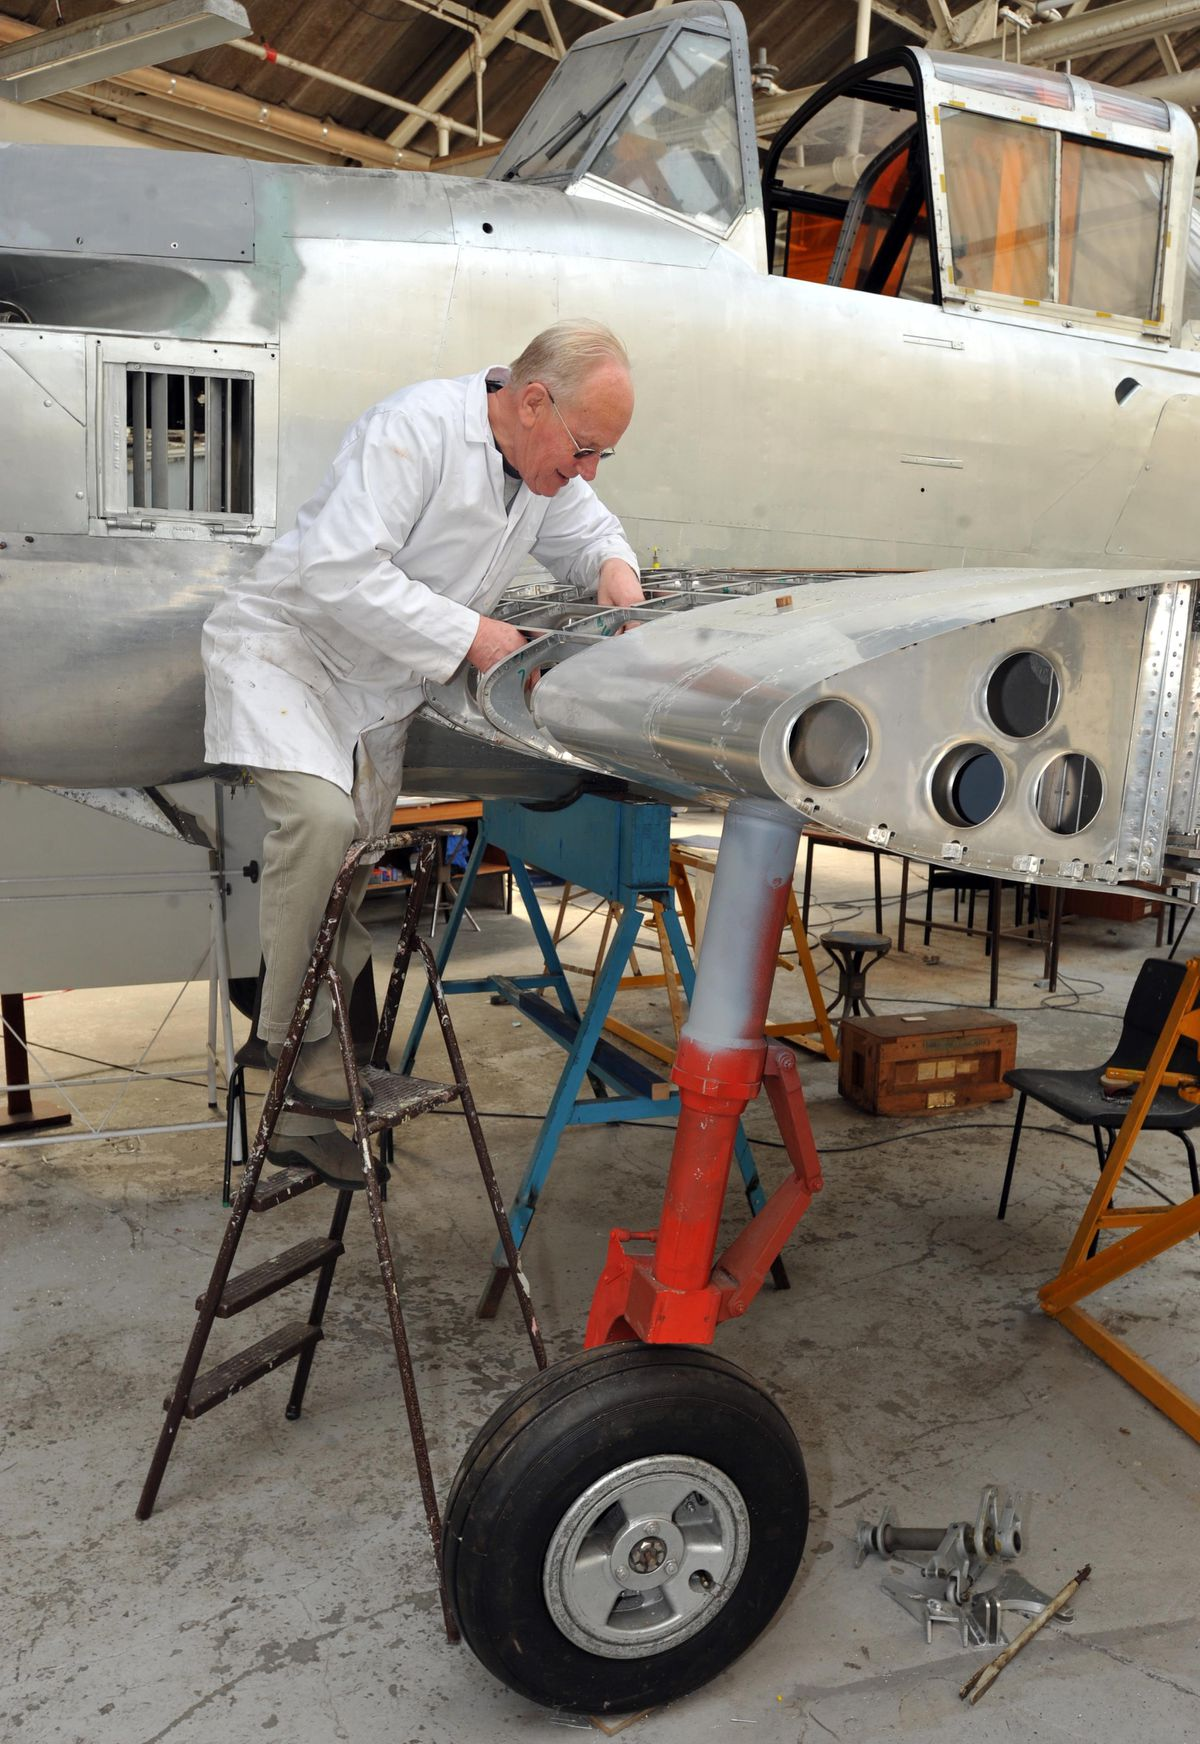 Terry Herrington from Dudley was an engineer who worked on Concorde. He finally achieved his dream of flying on the plane in 2003.